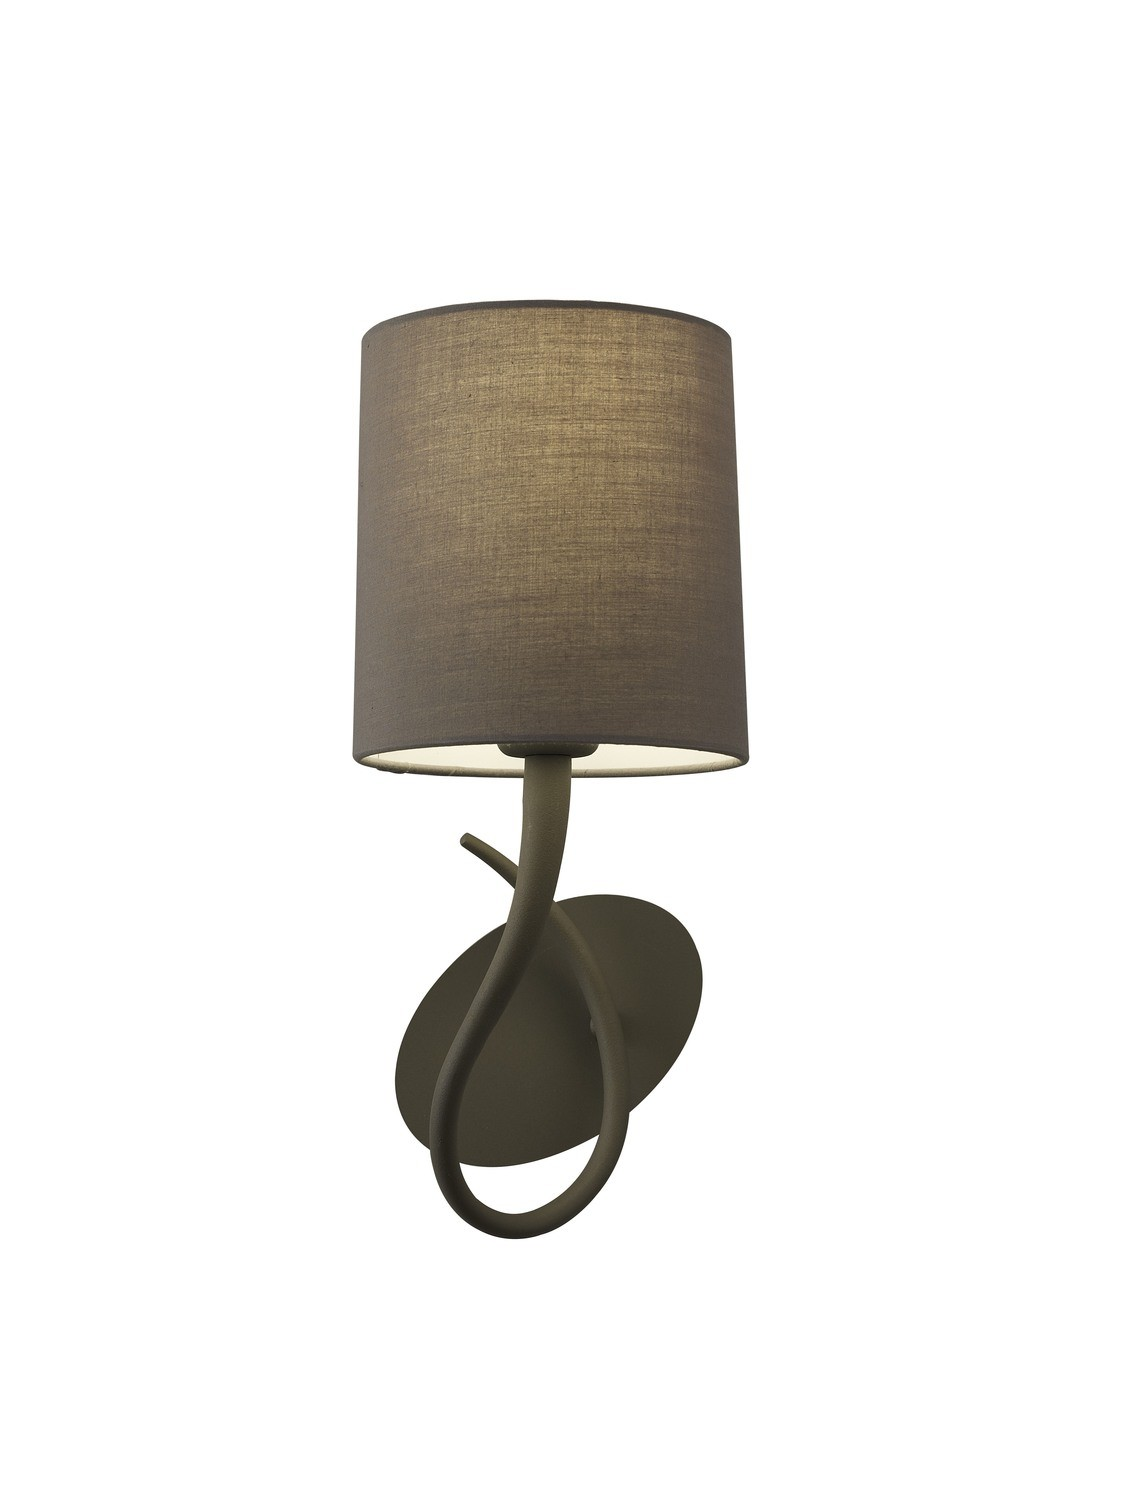 Lua Wall Lamp Switched 1 Light E27, Ash Grey With Ash Grey Shade